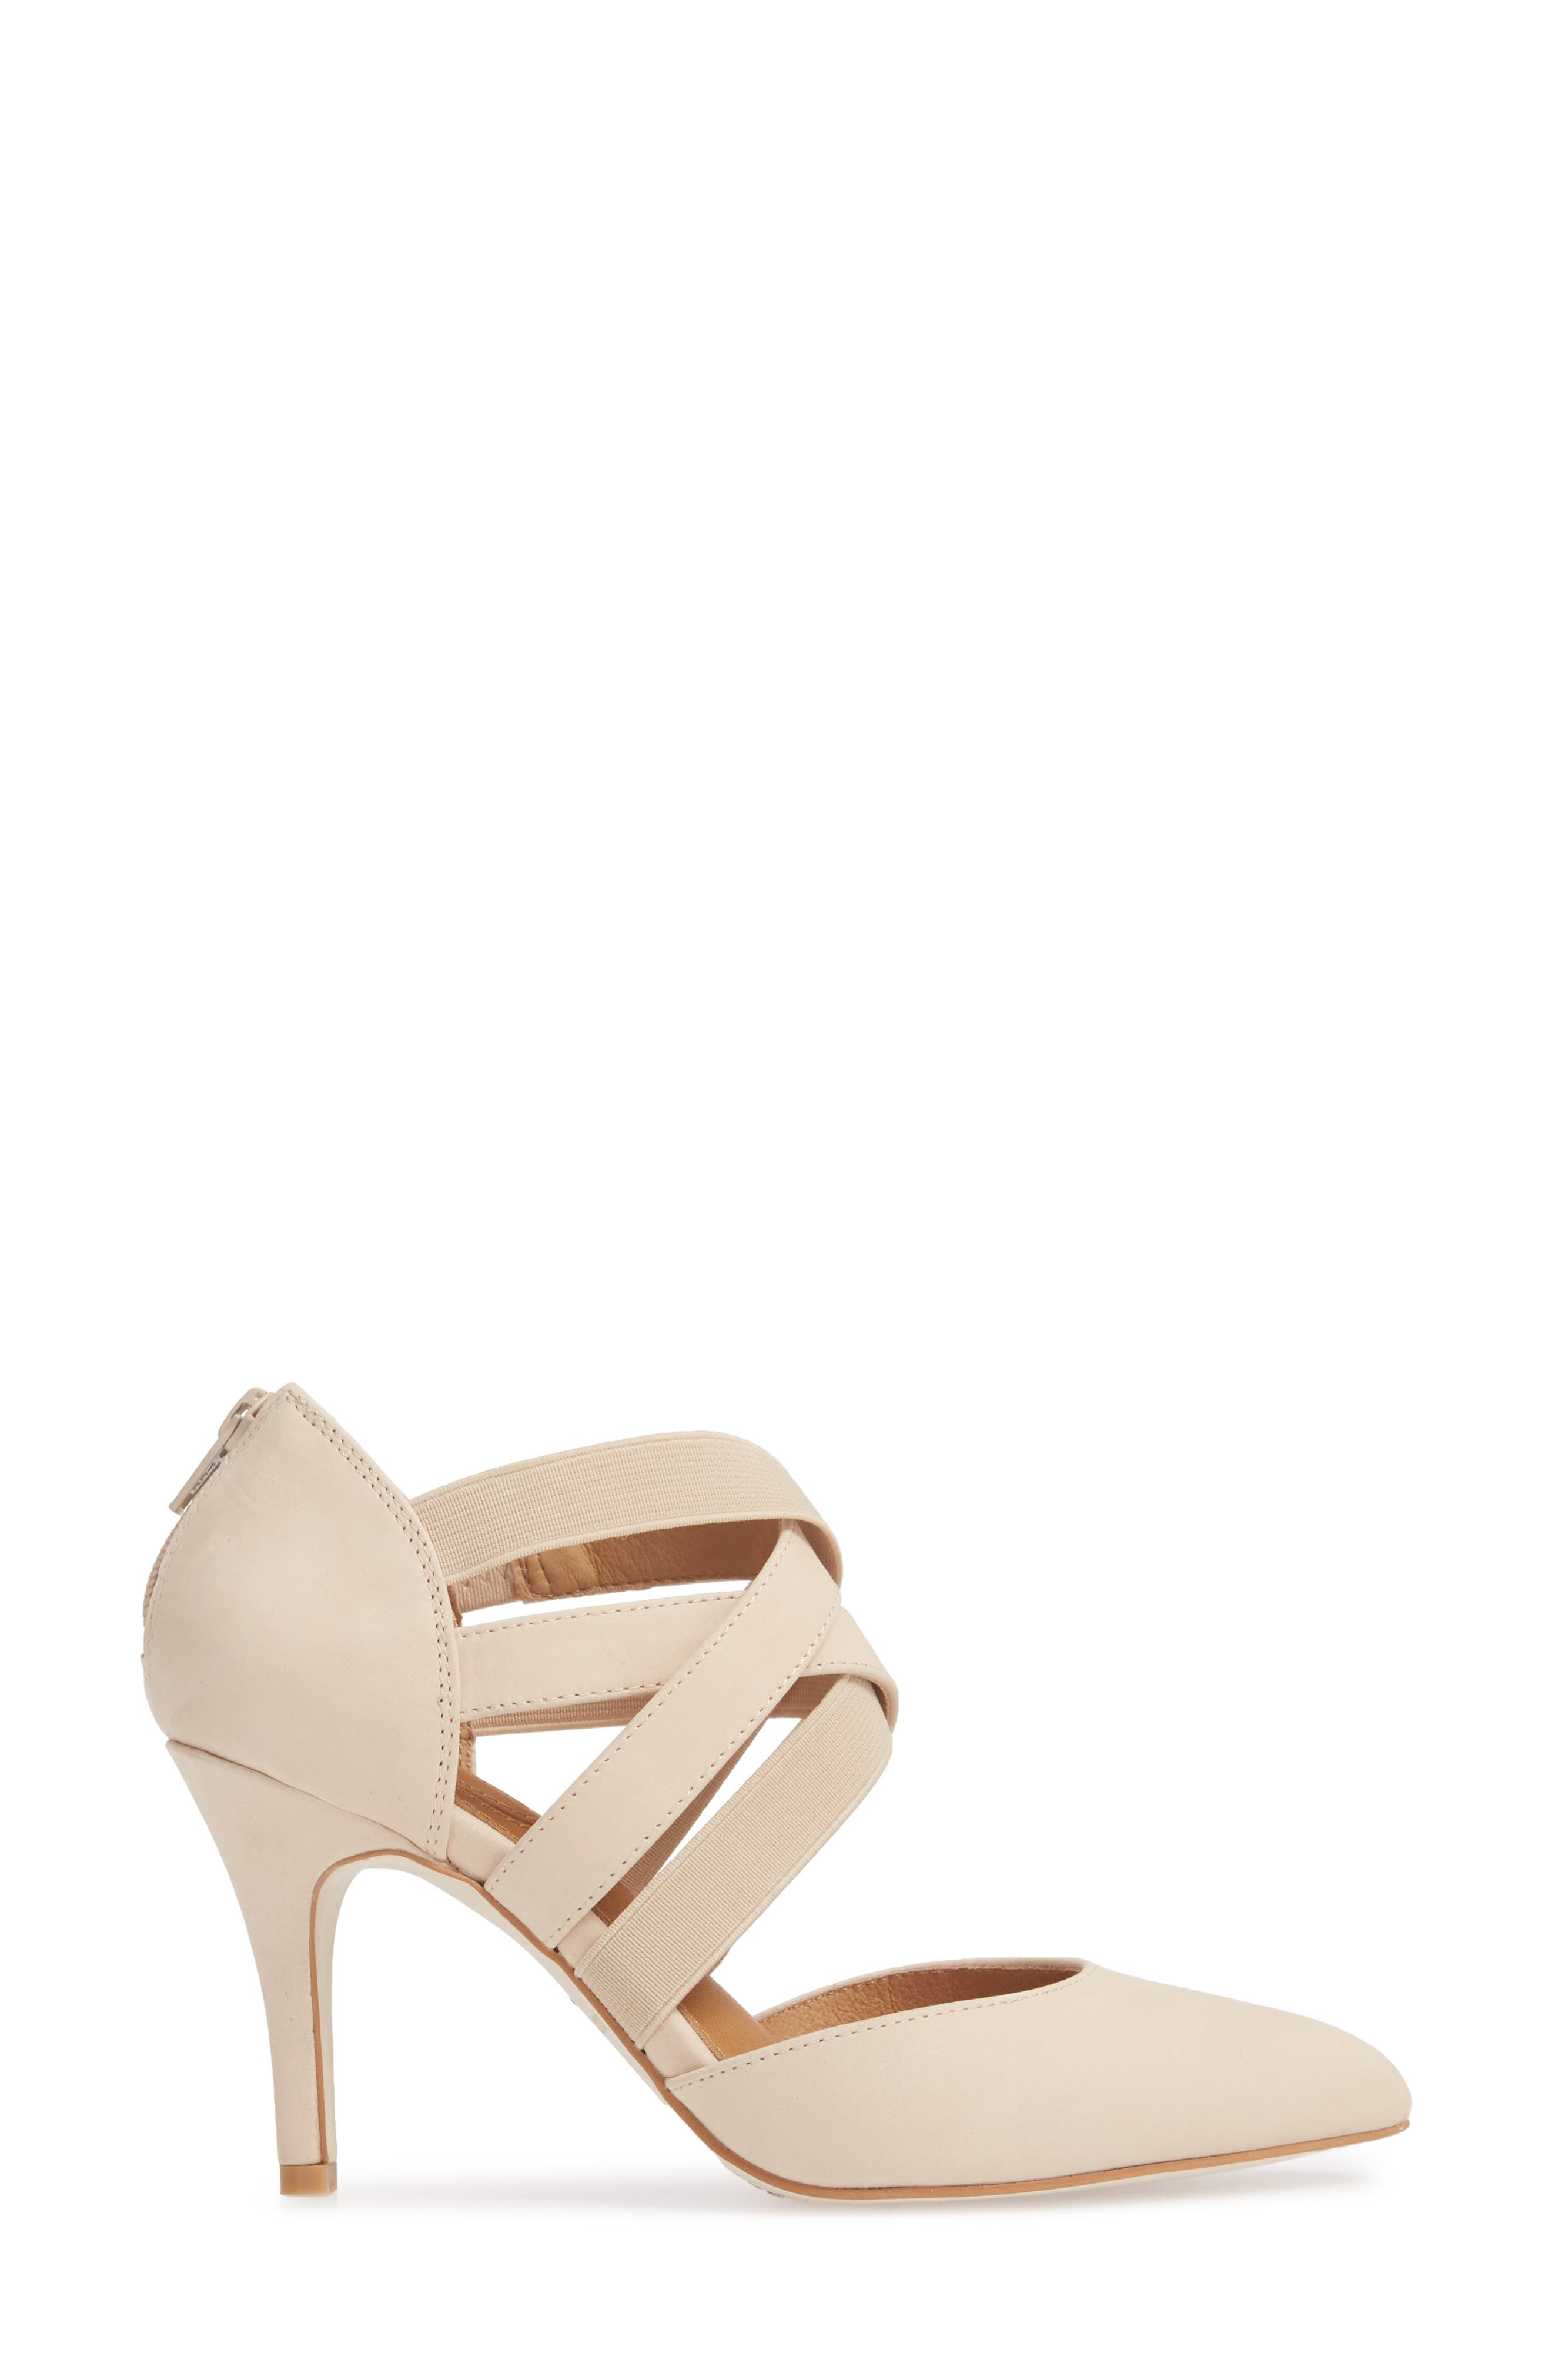 Crystal Strappy Pump,                             Alternate thumbnail 3, color,                             NUDE NUBUCK